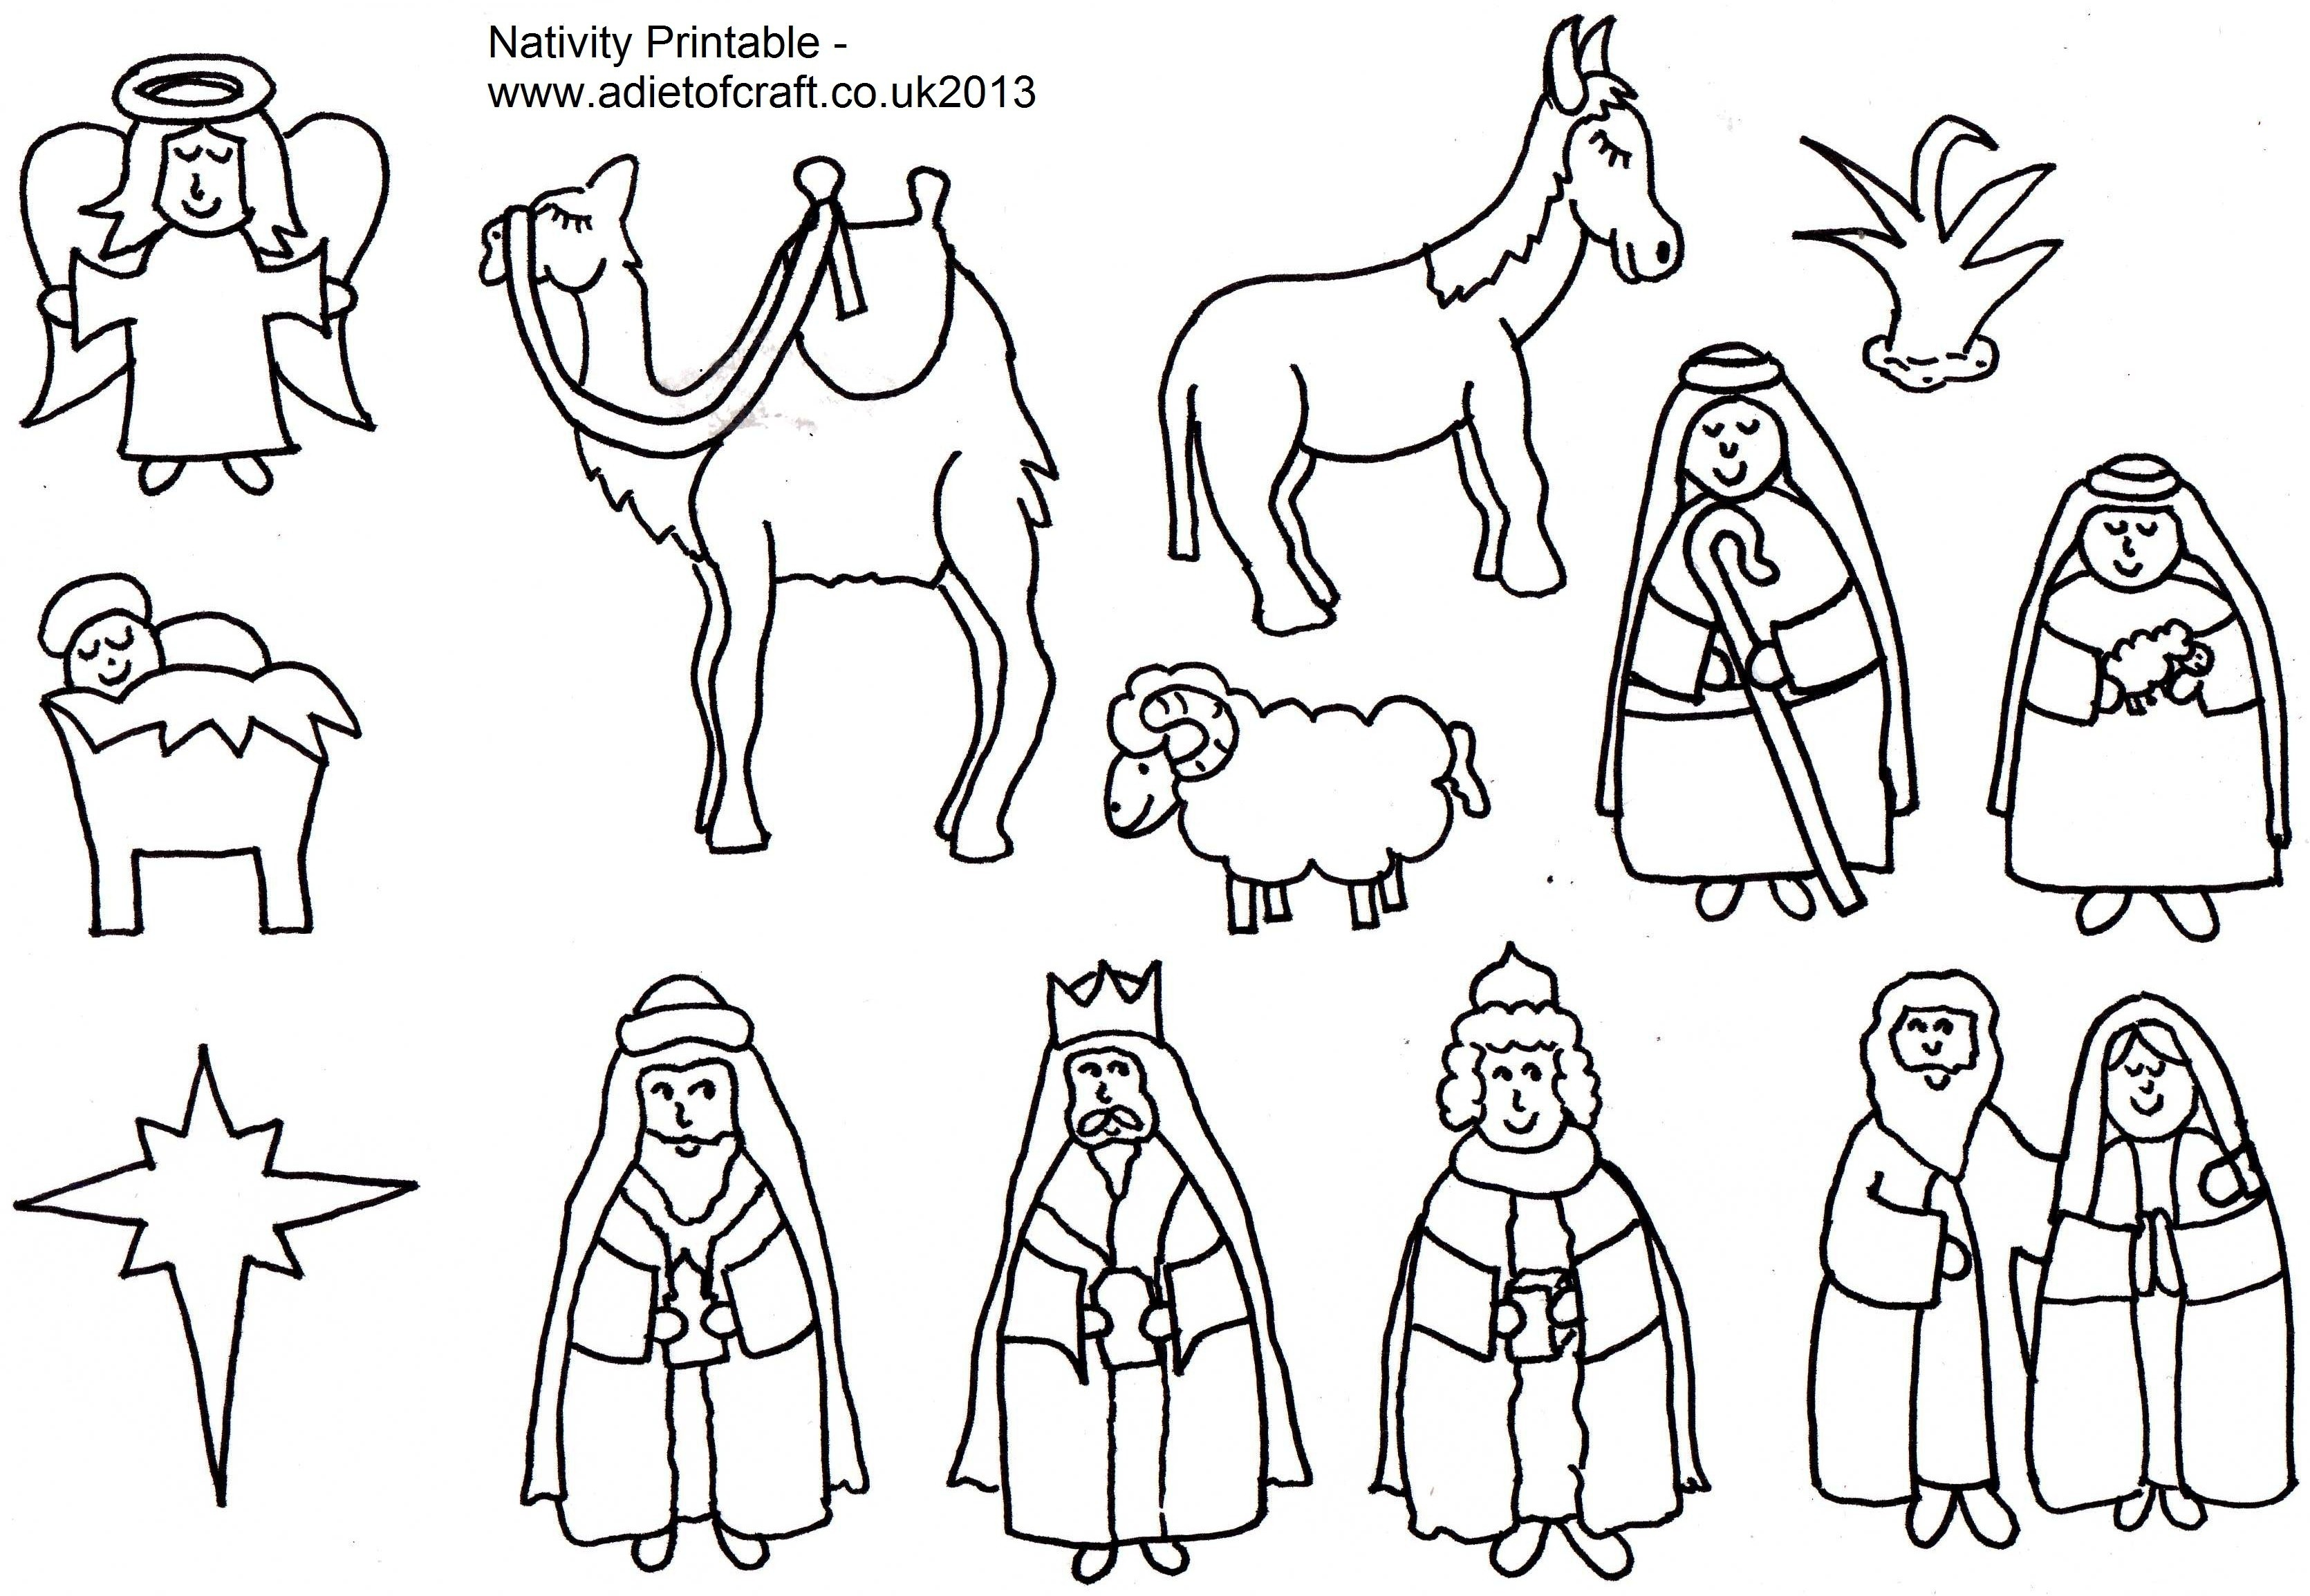 Christmas Nativity Coloring Pages To Print With Free For Kids Valid Page